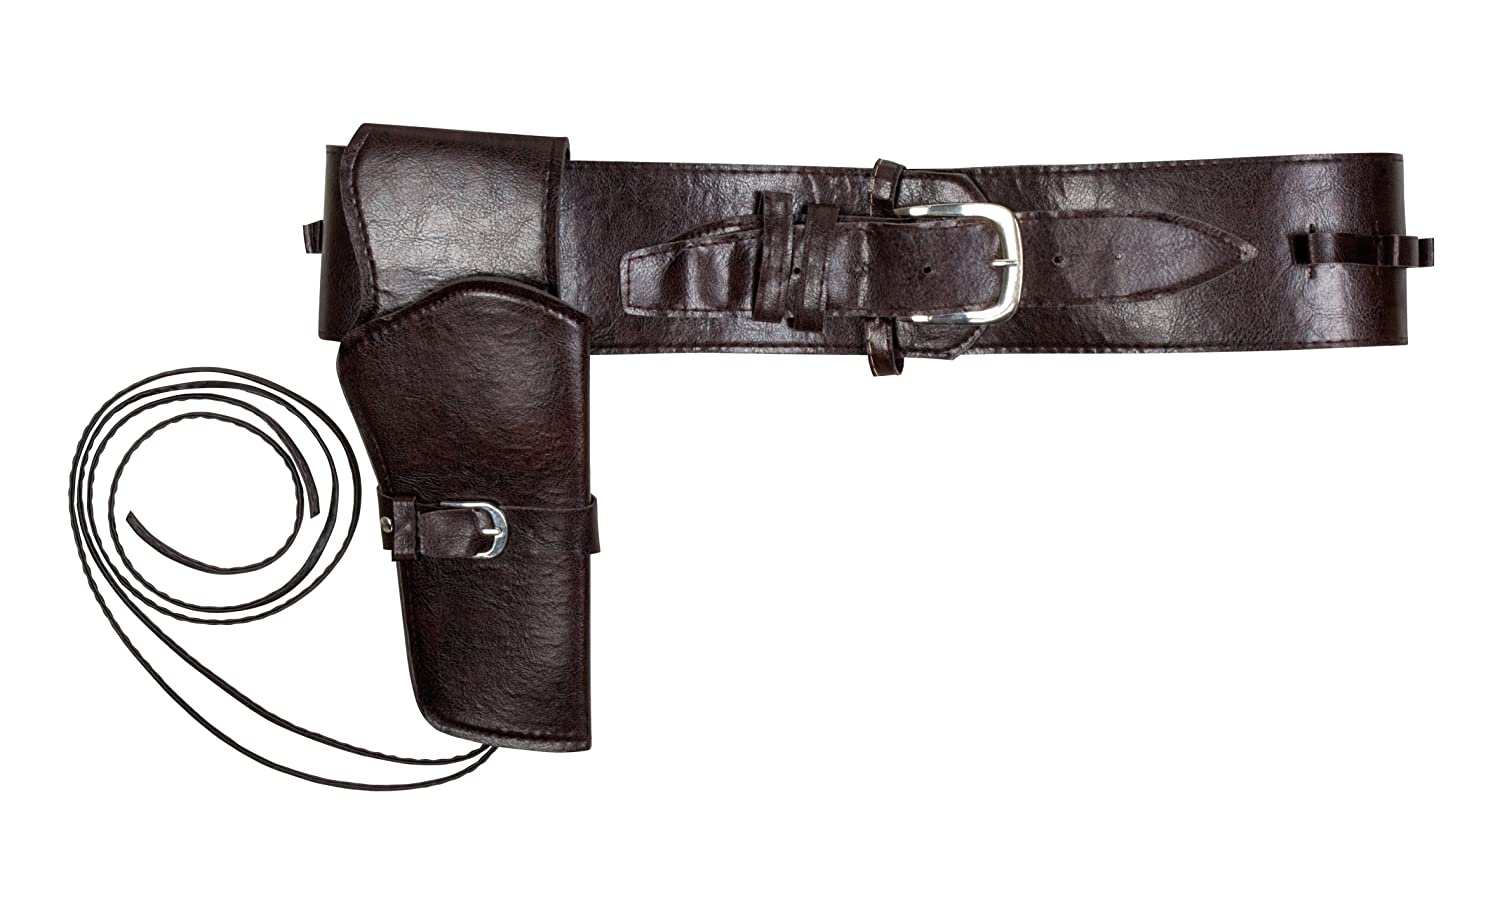 BOLAND BV Boland 00579 Cowboy Holster and Belt